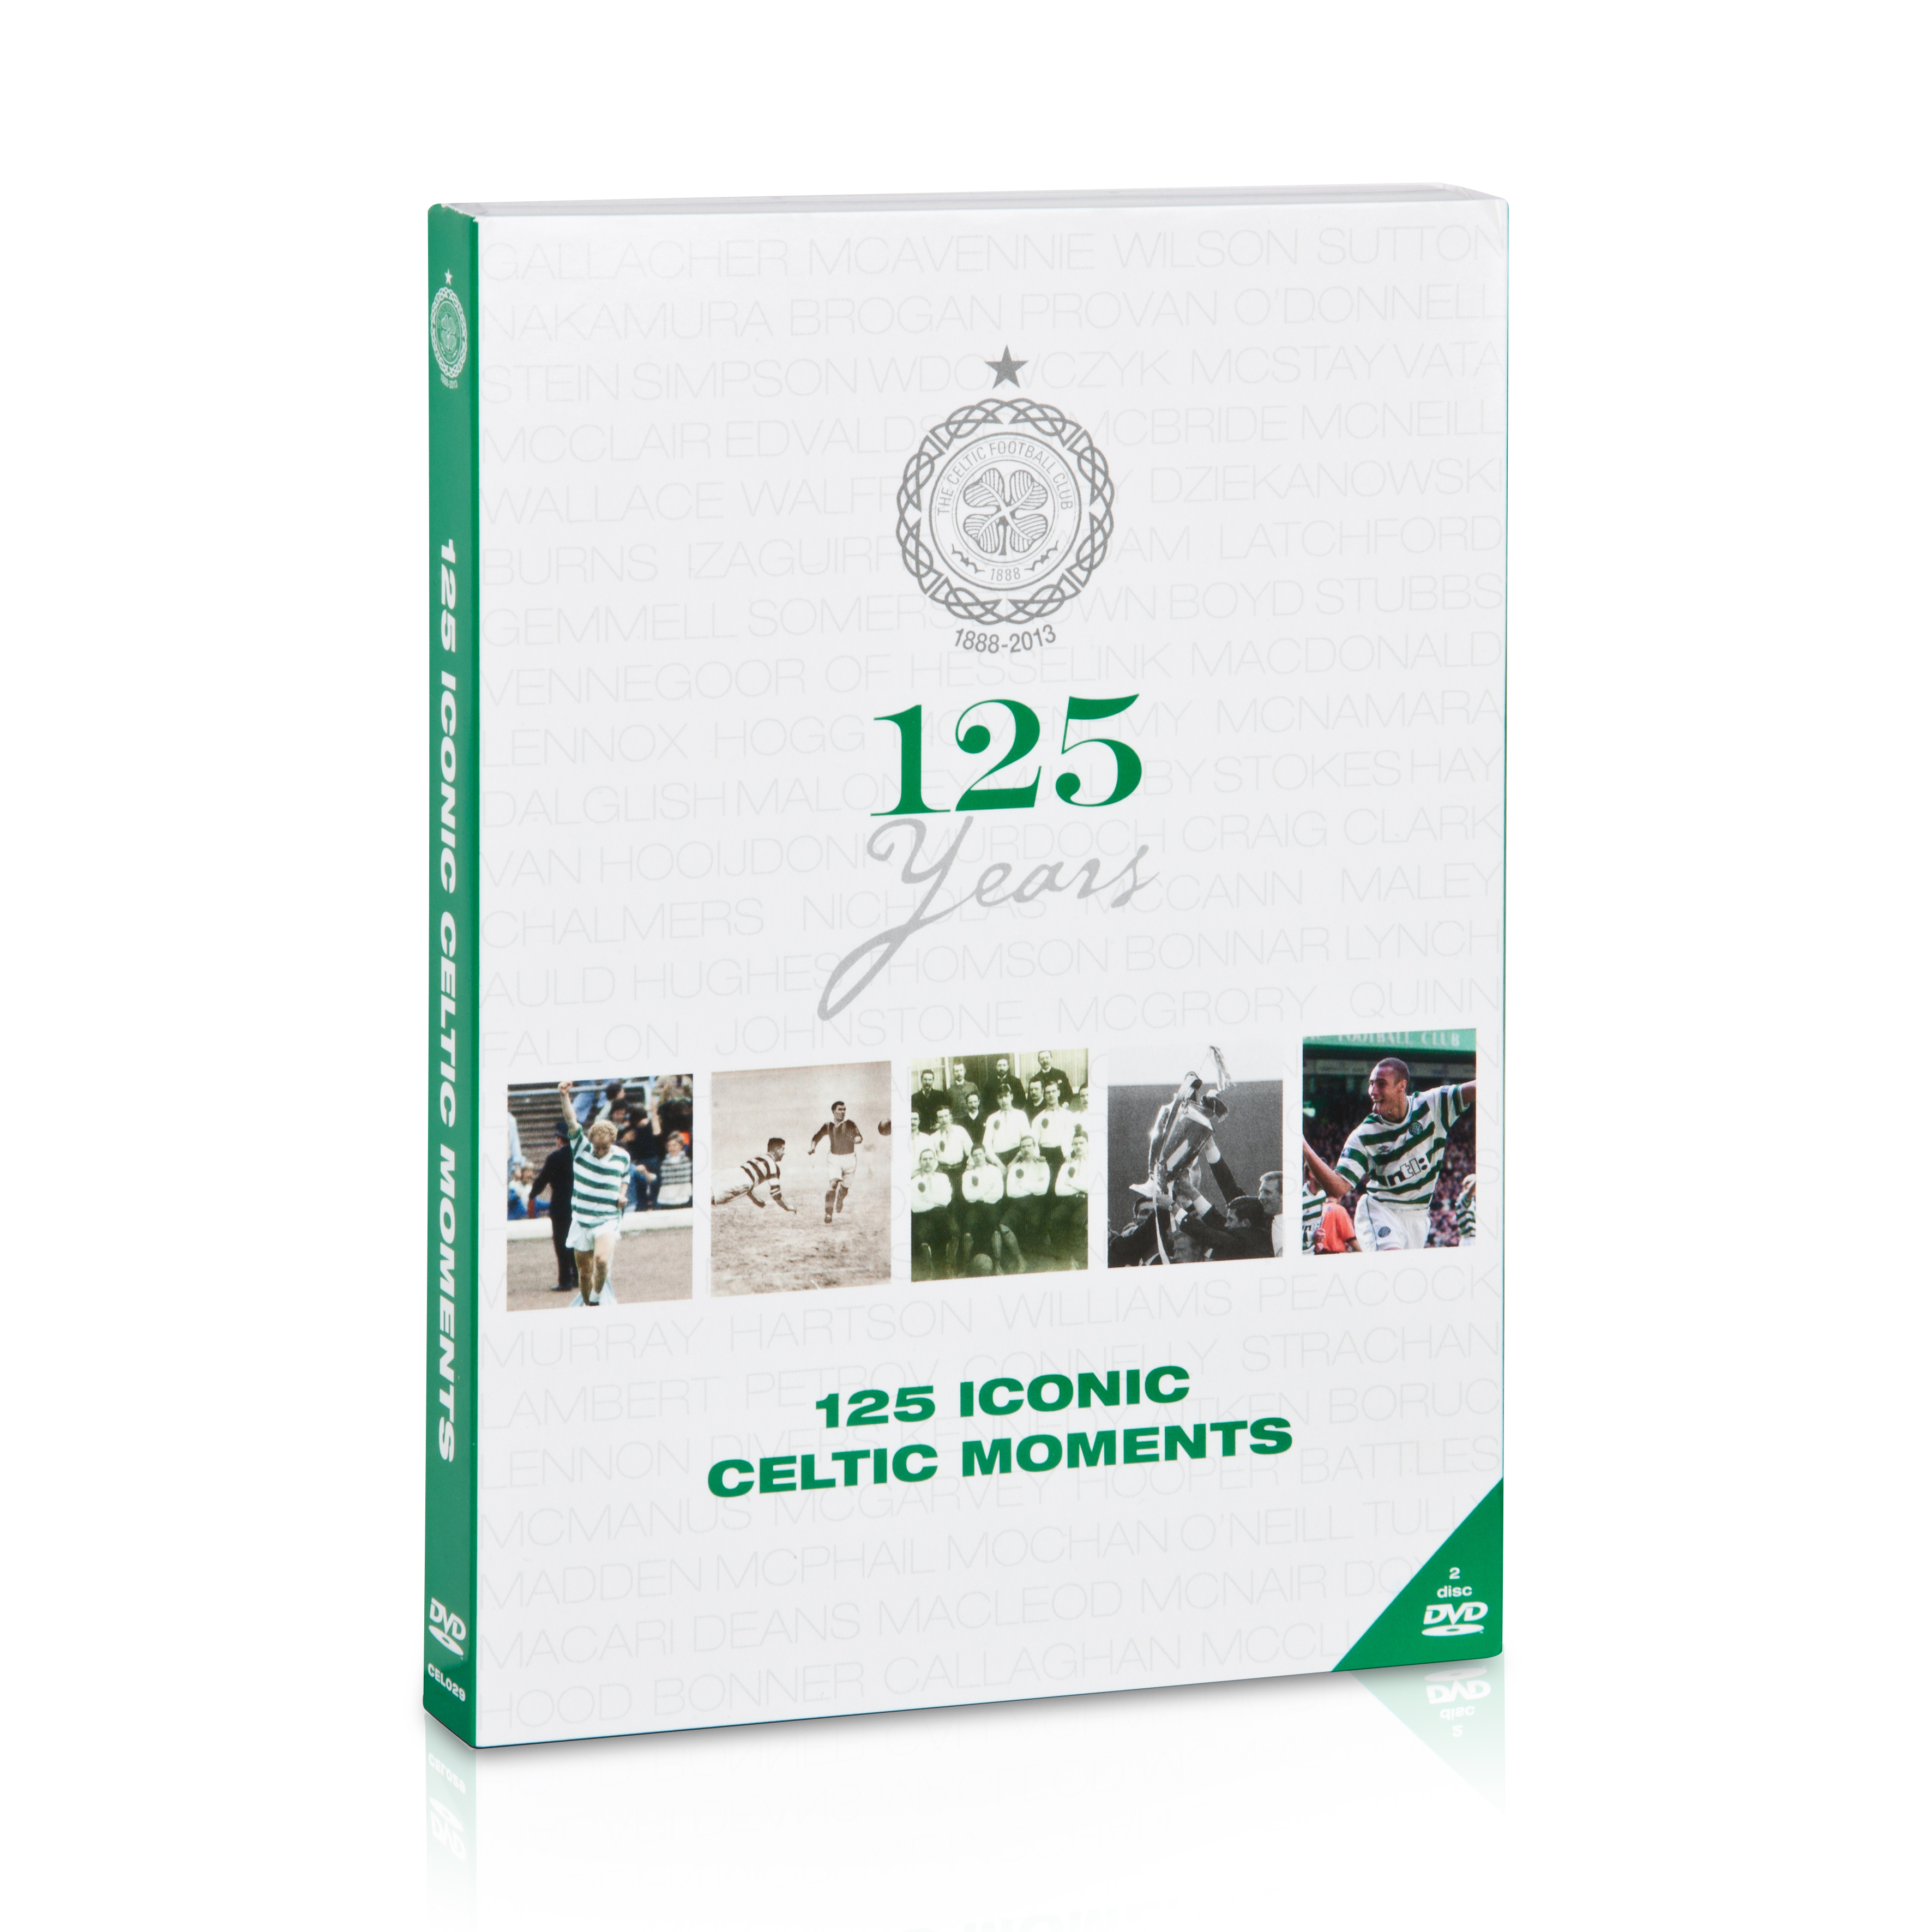 Celtic 125 Years of DVD - 2 Disc